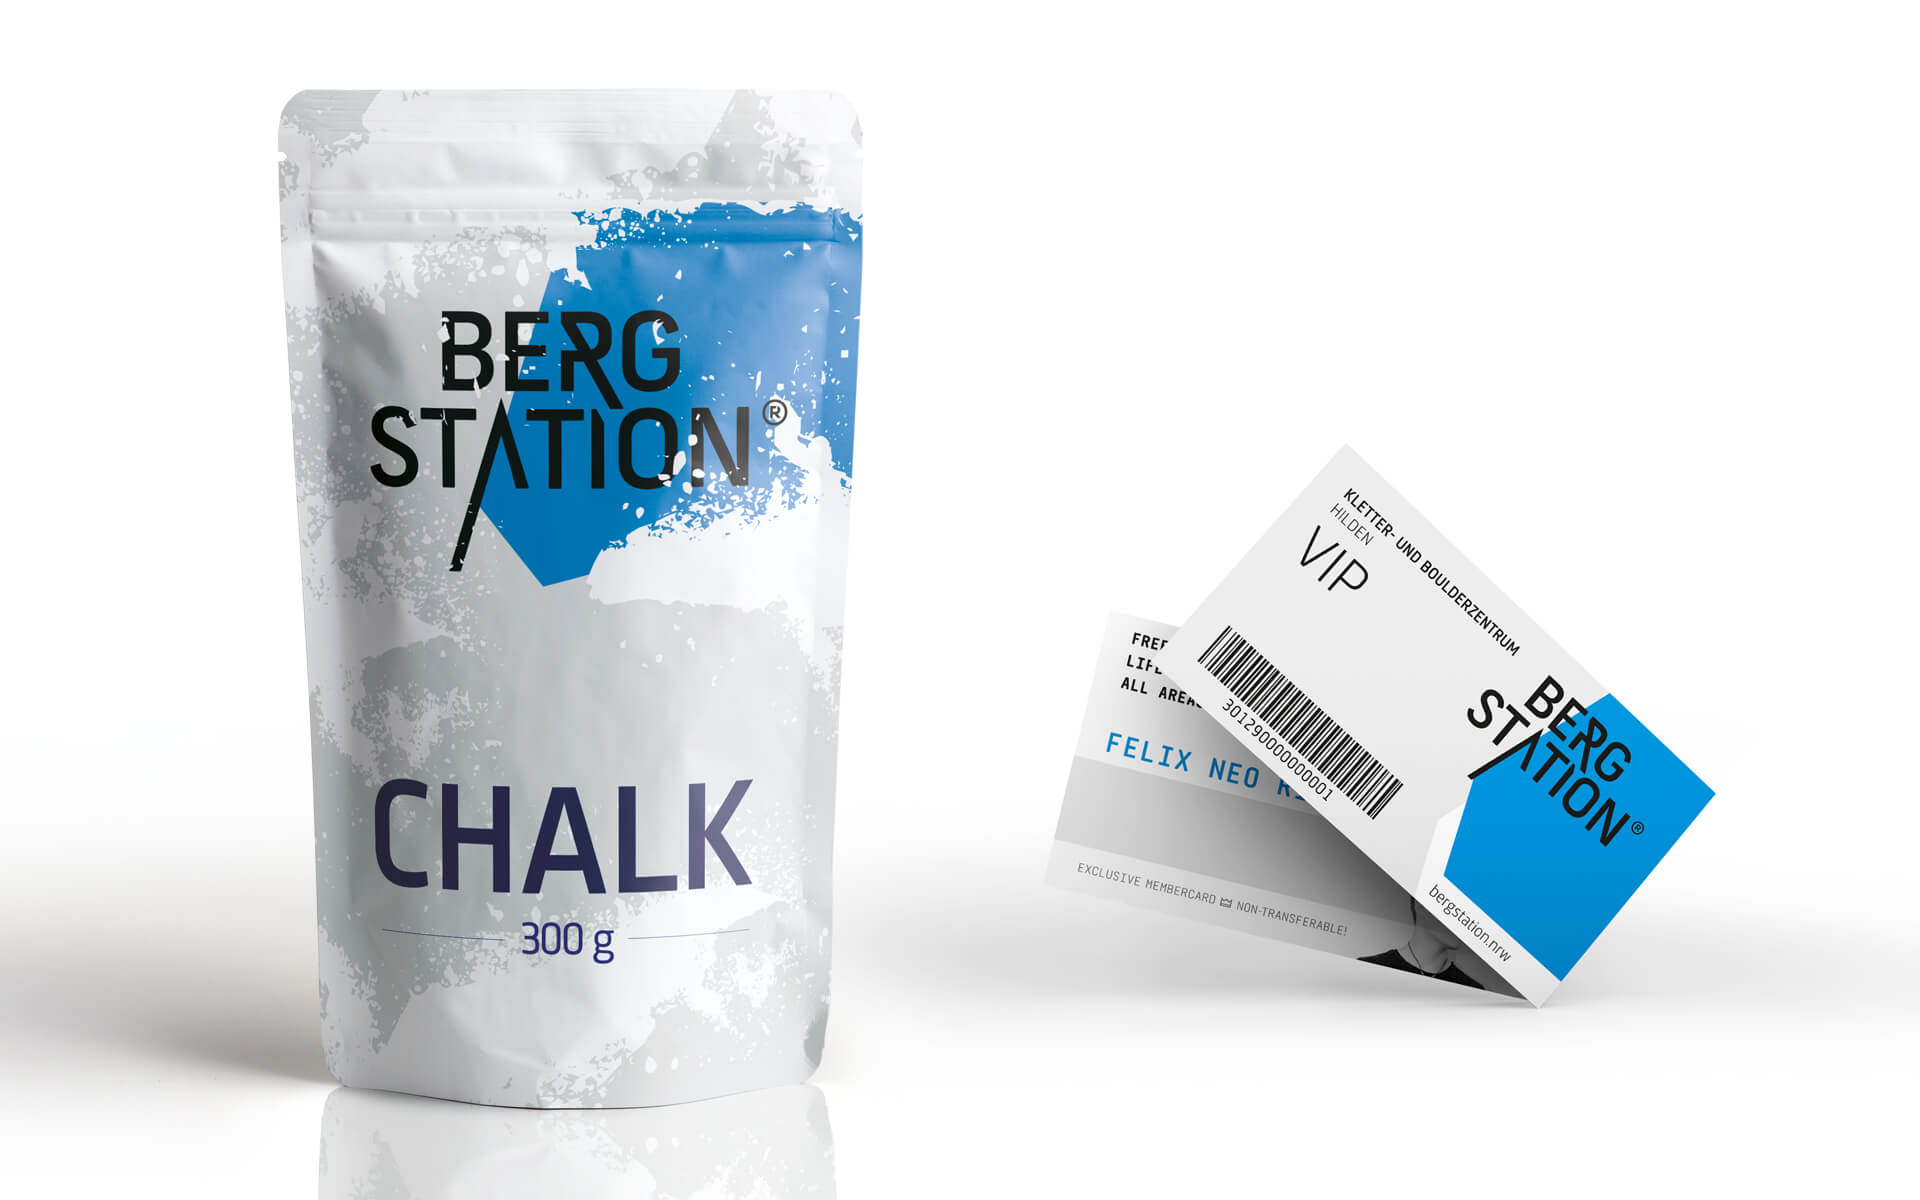 Bergstation Corporate Design, Stationery, Chalk Pouch and VIP-Cards